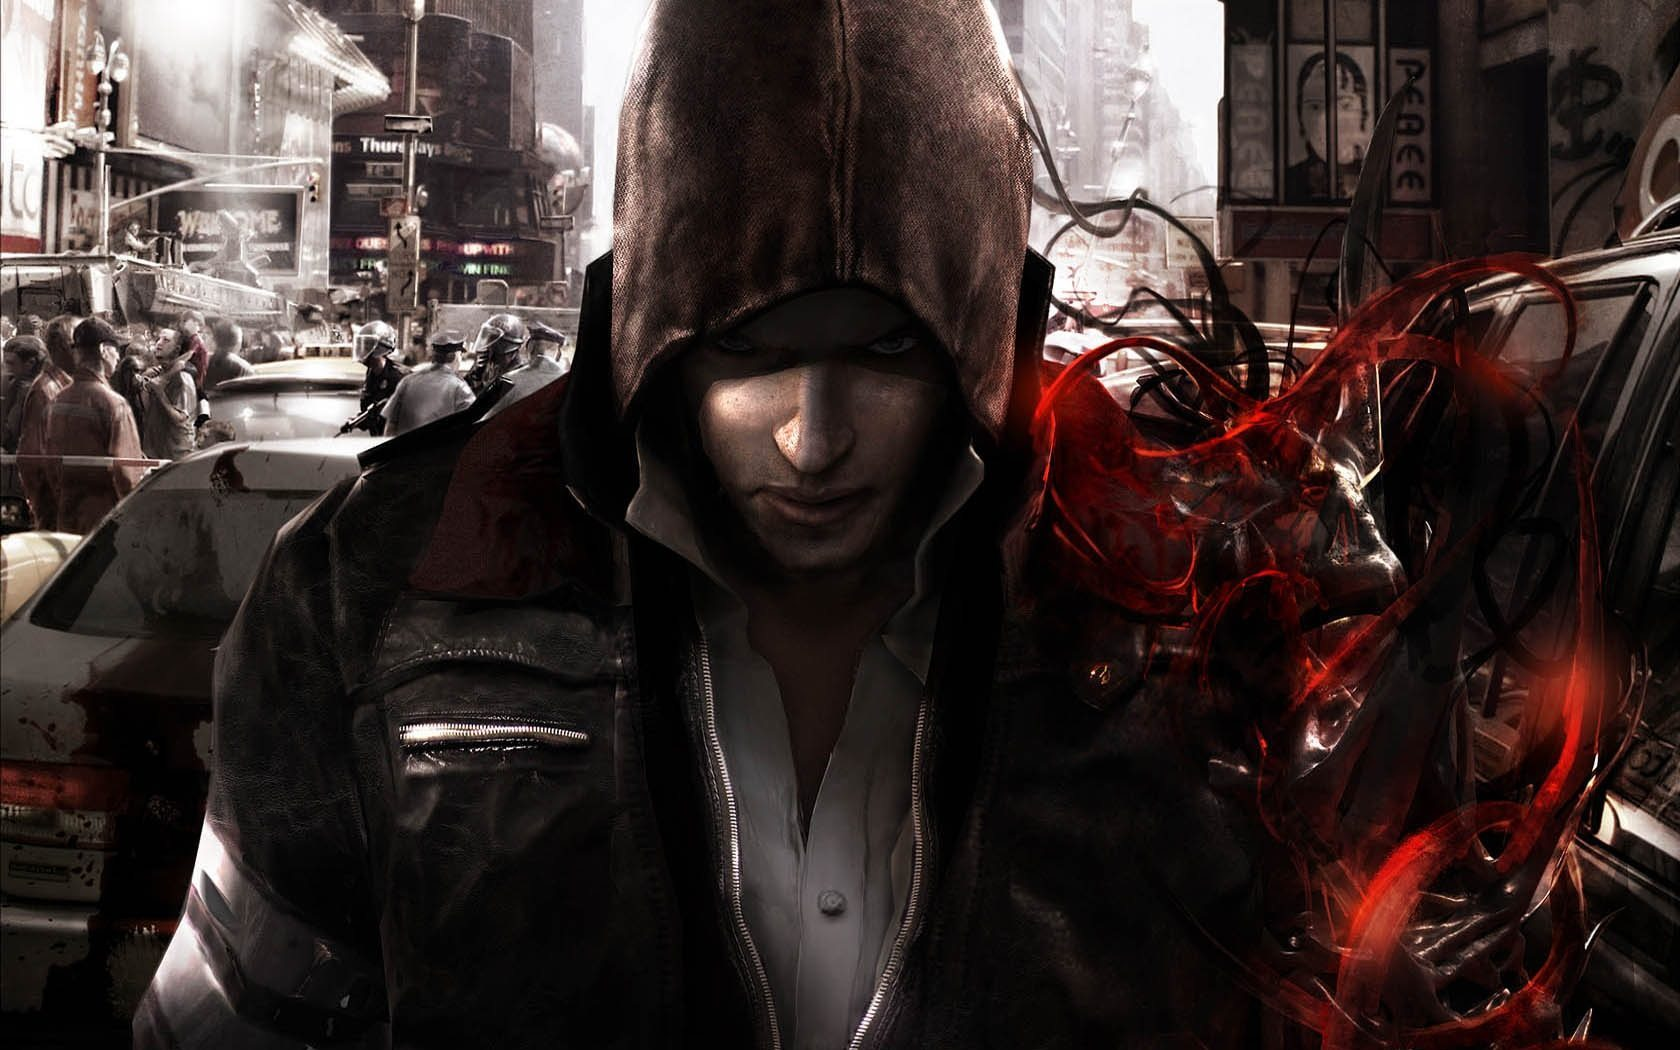 Gamescon 2011: Prototype 2 Blackwatch Trailer